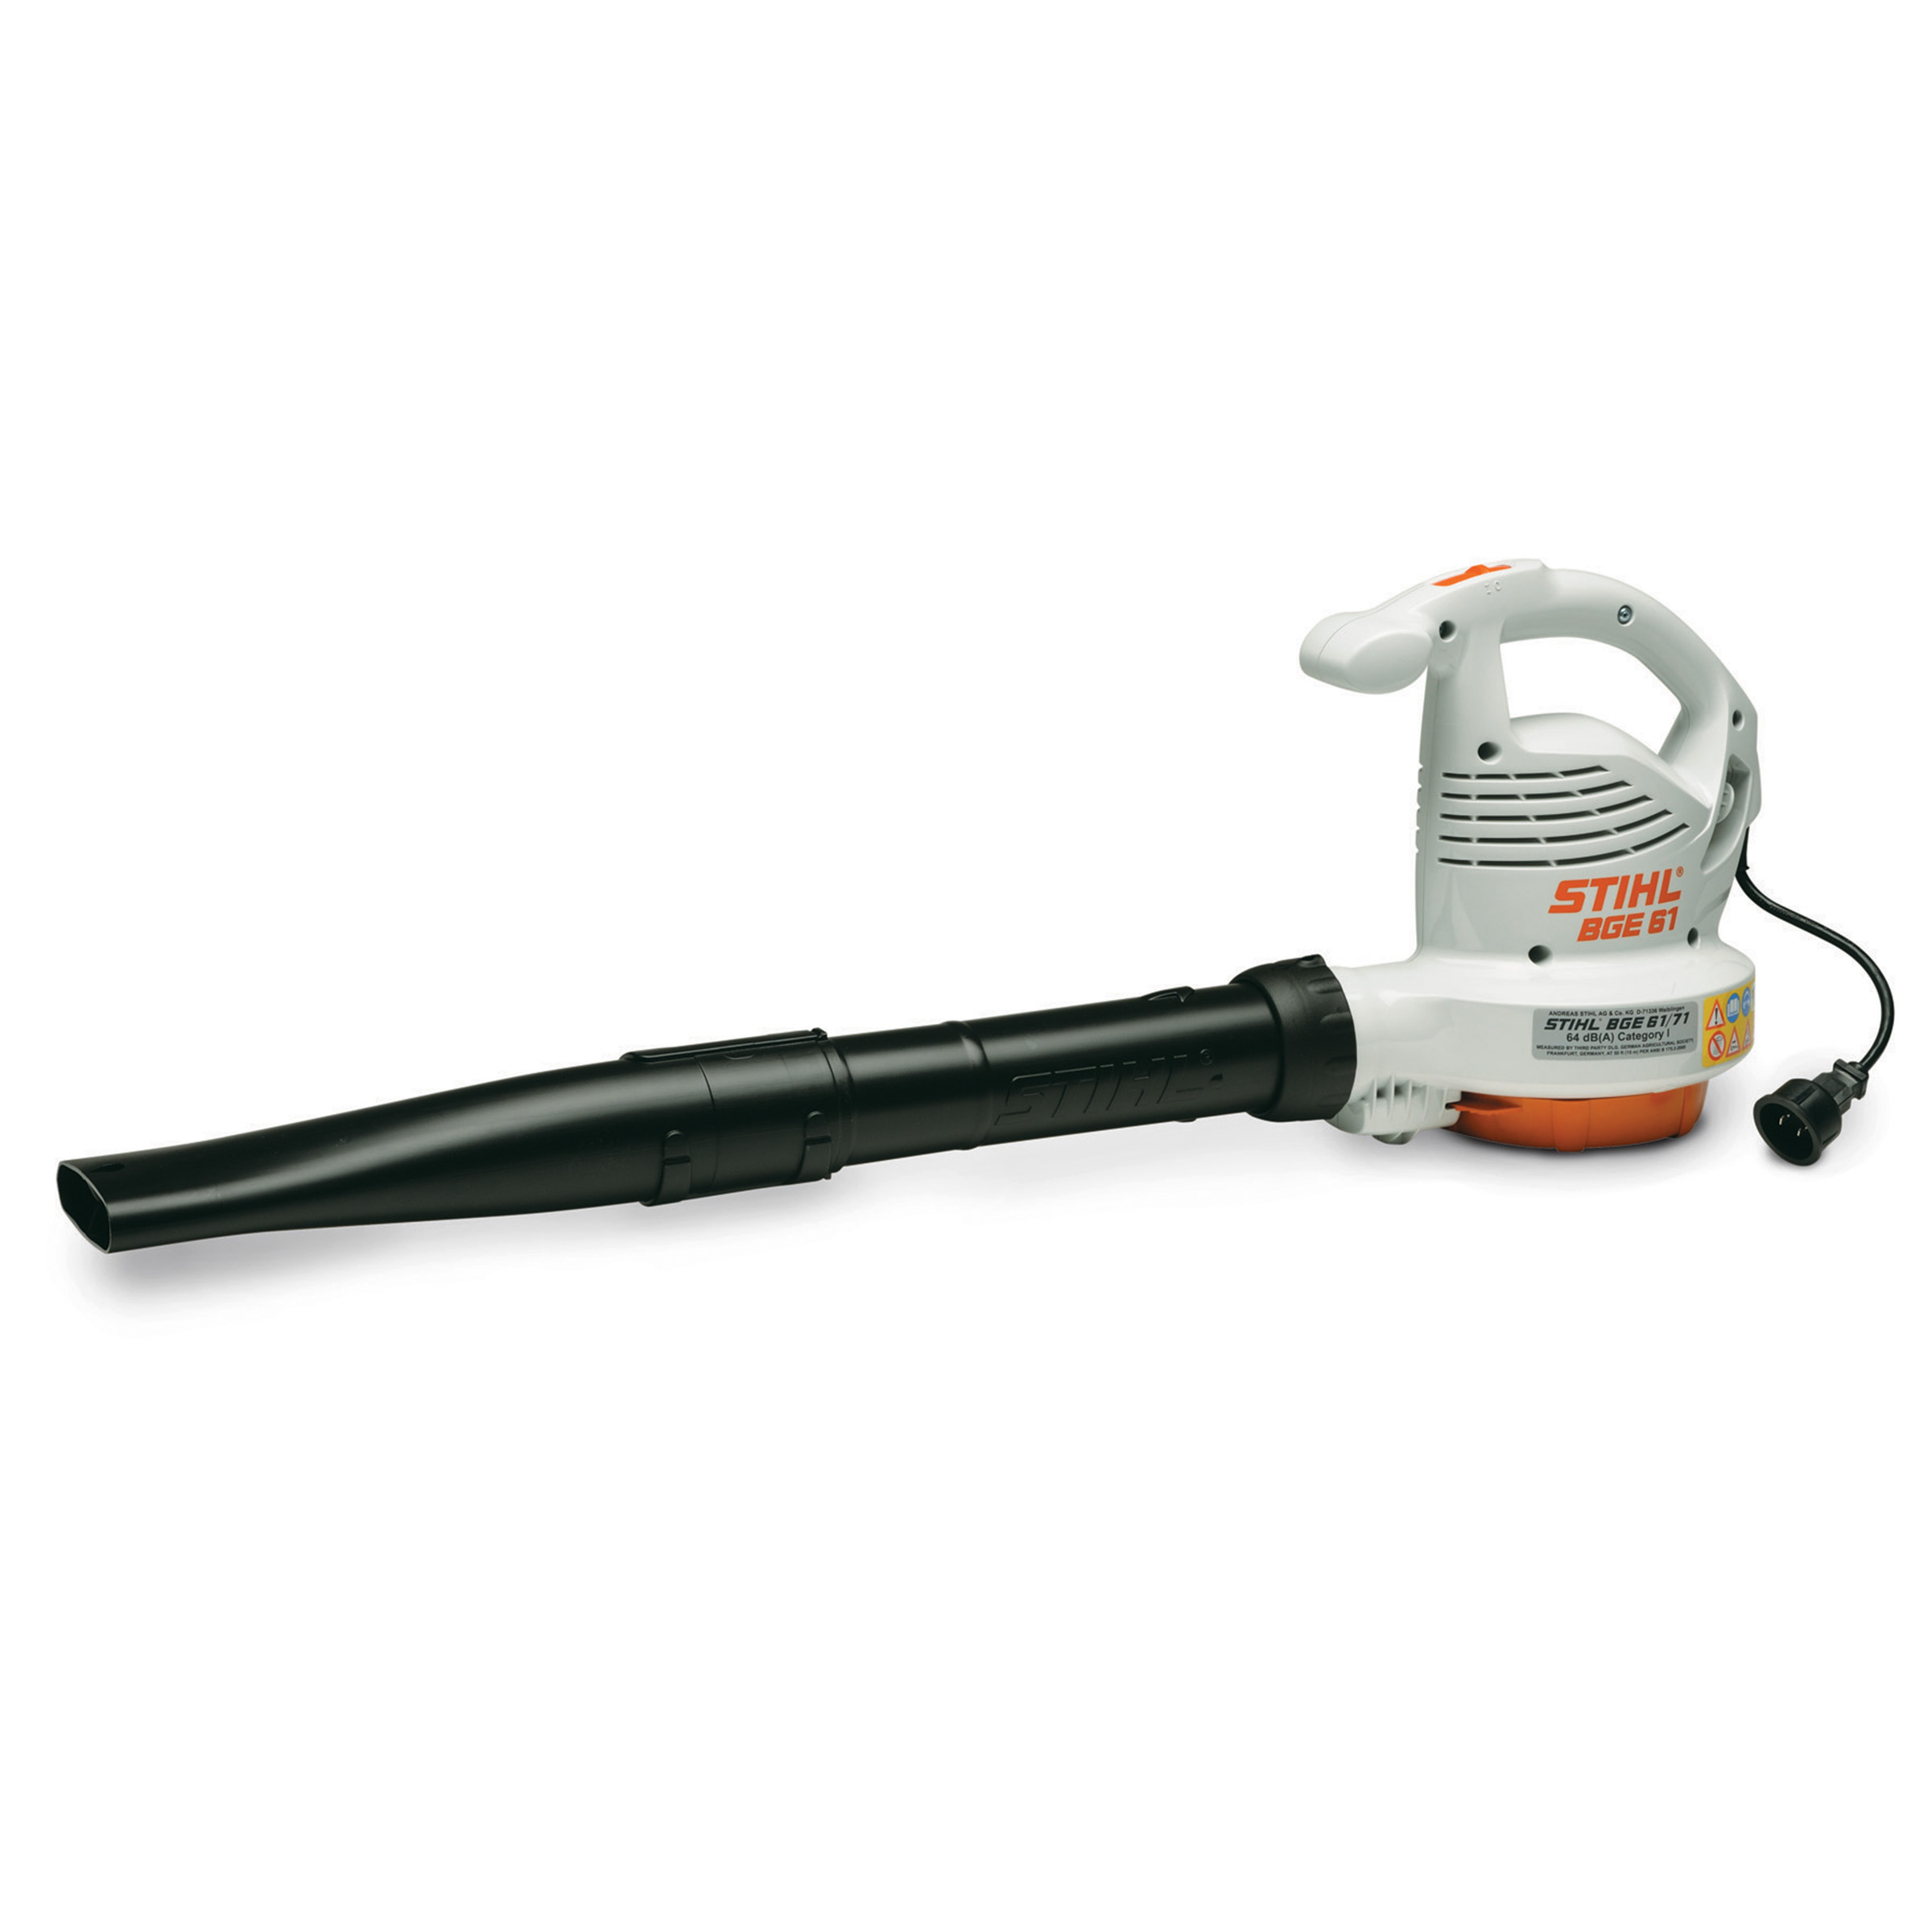 › All Products › Stihl › Stihl BGE 61 Electric Blower #963645 #AB4820